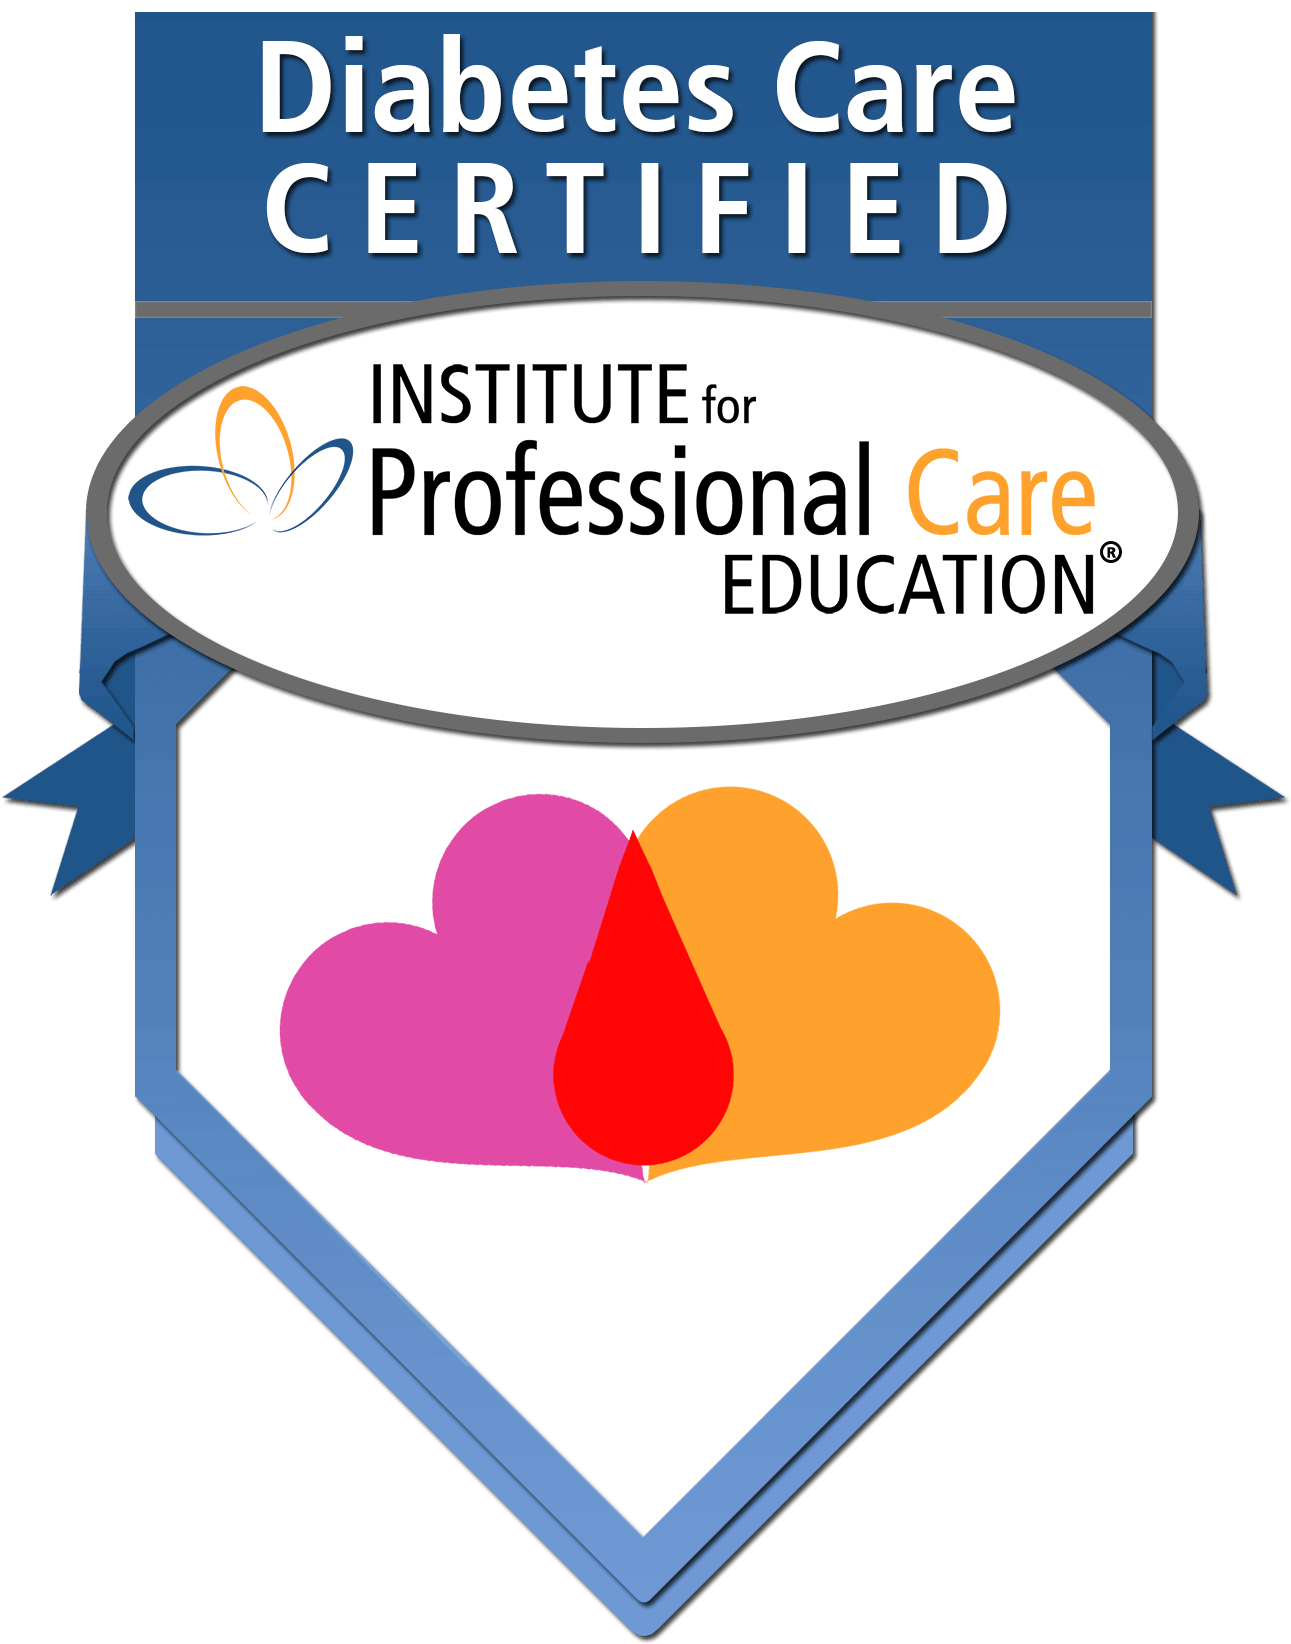 Homecare Agency is Diabetes Care Certified by Institute for Professional Care Education